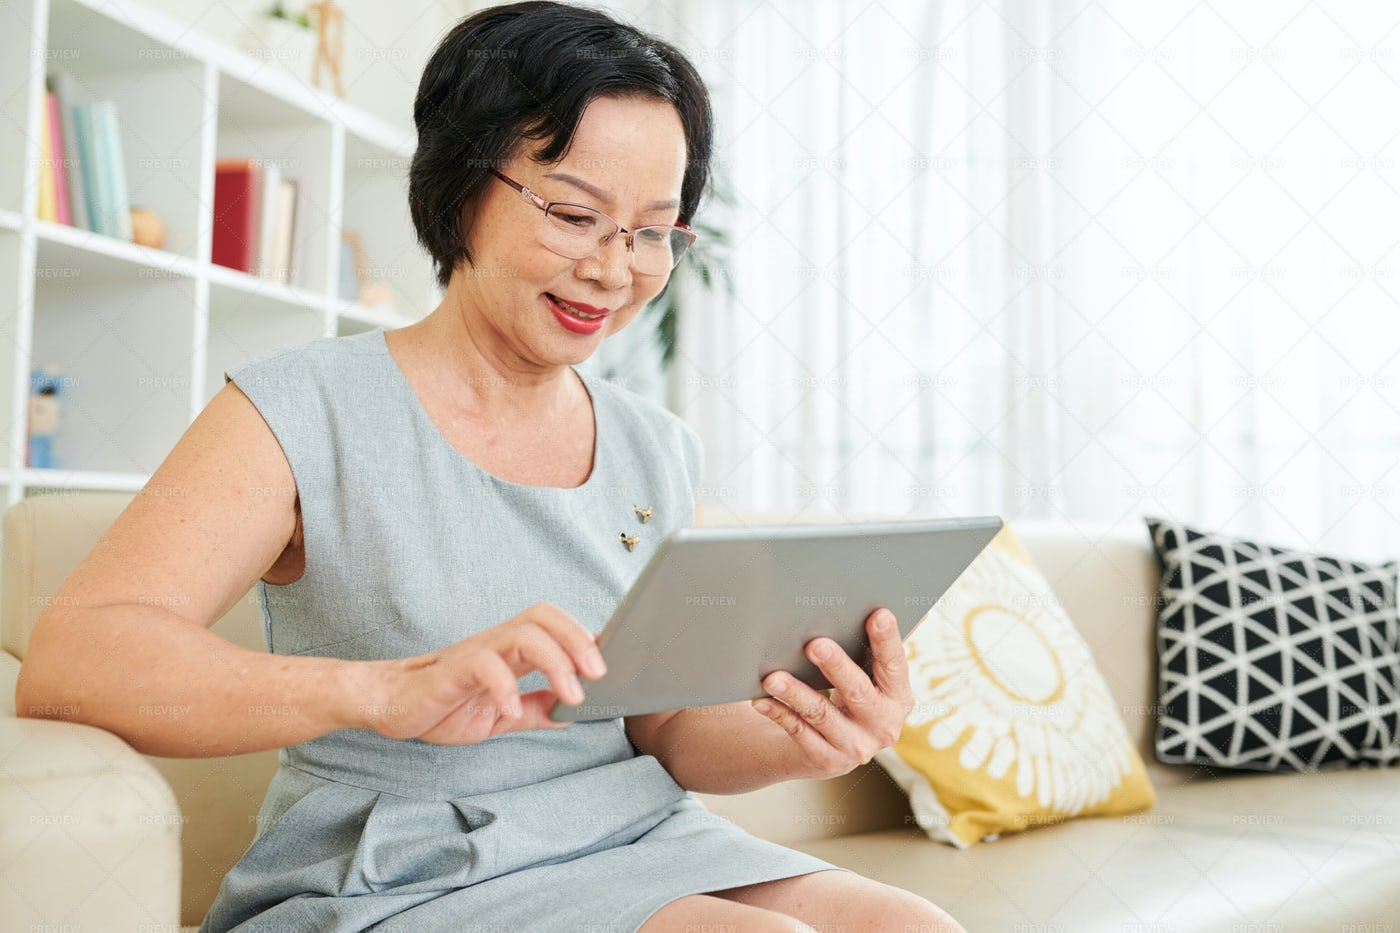 Woman Using Tablet Pc At Home: Stock Photos